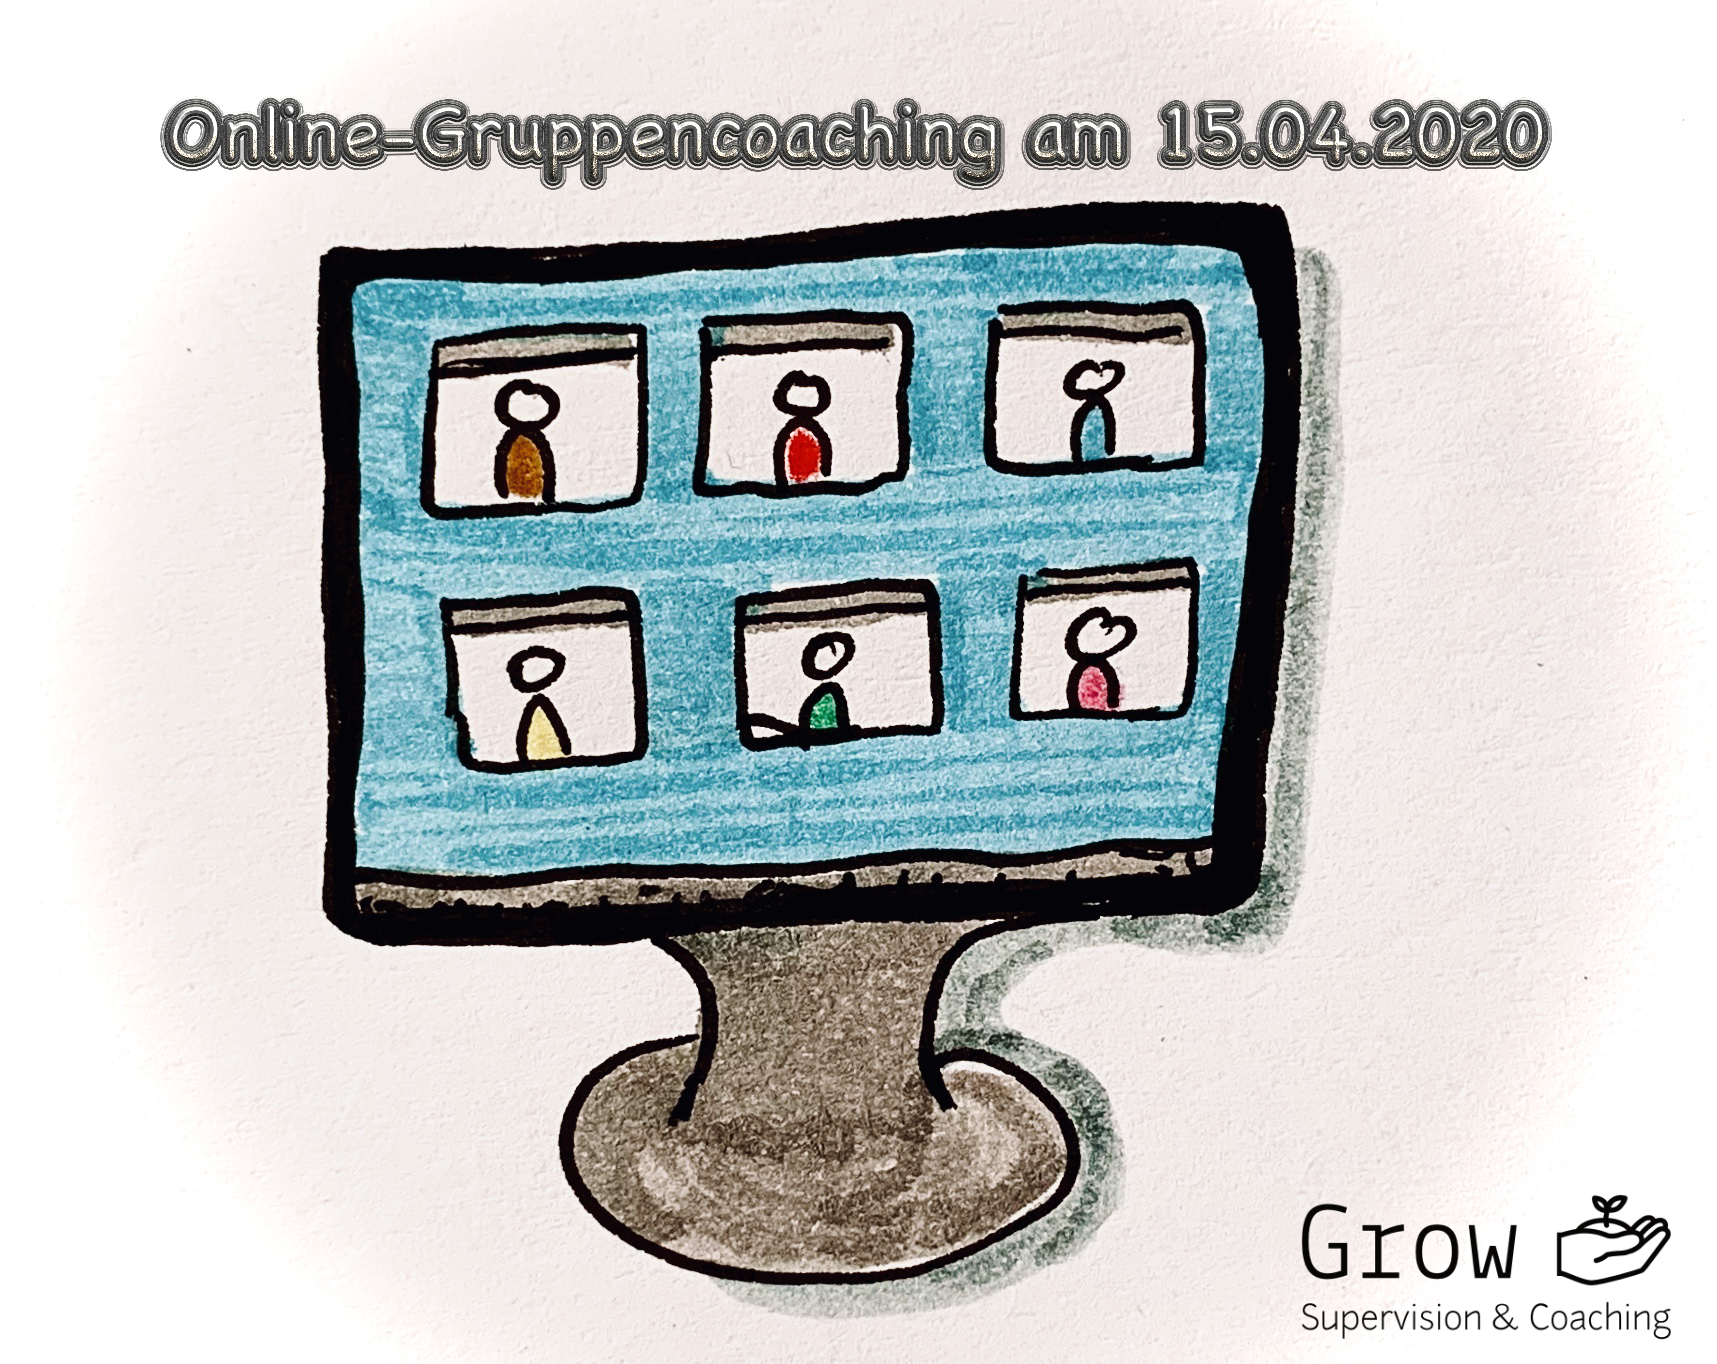 Online-Gruppencoaching